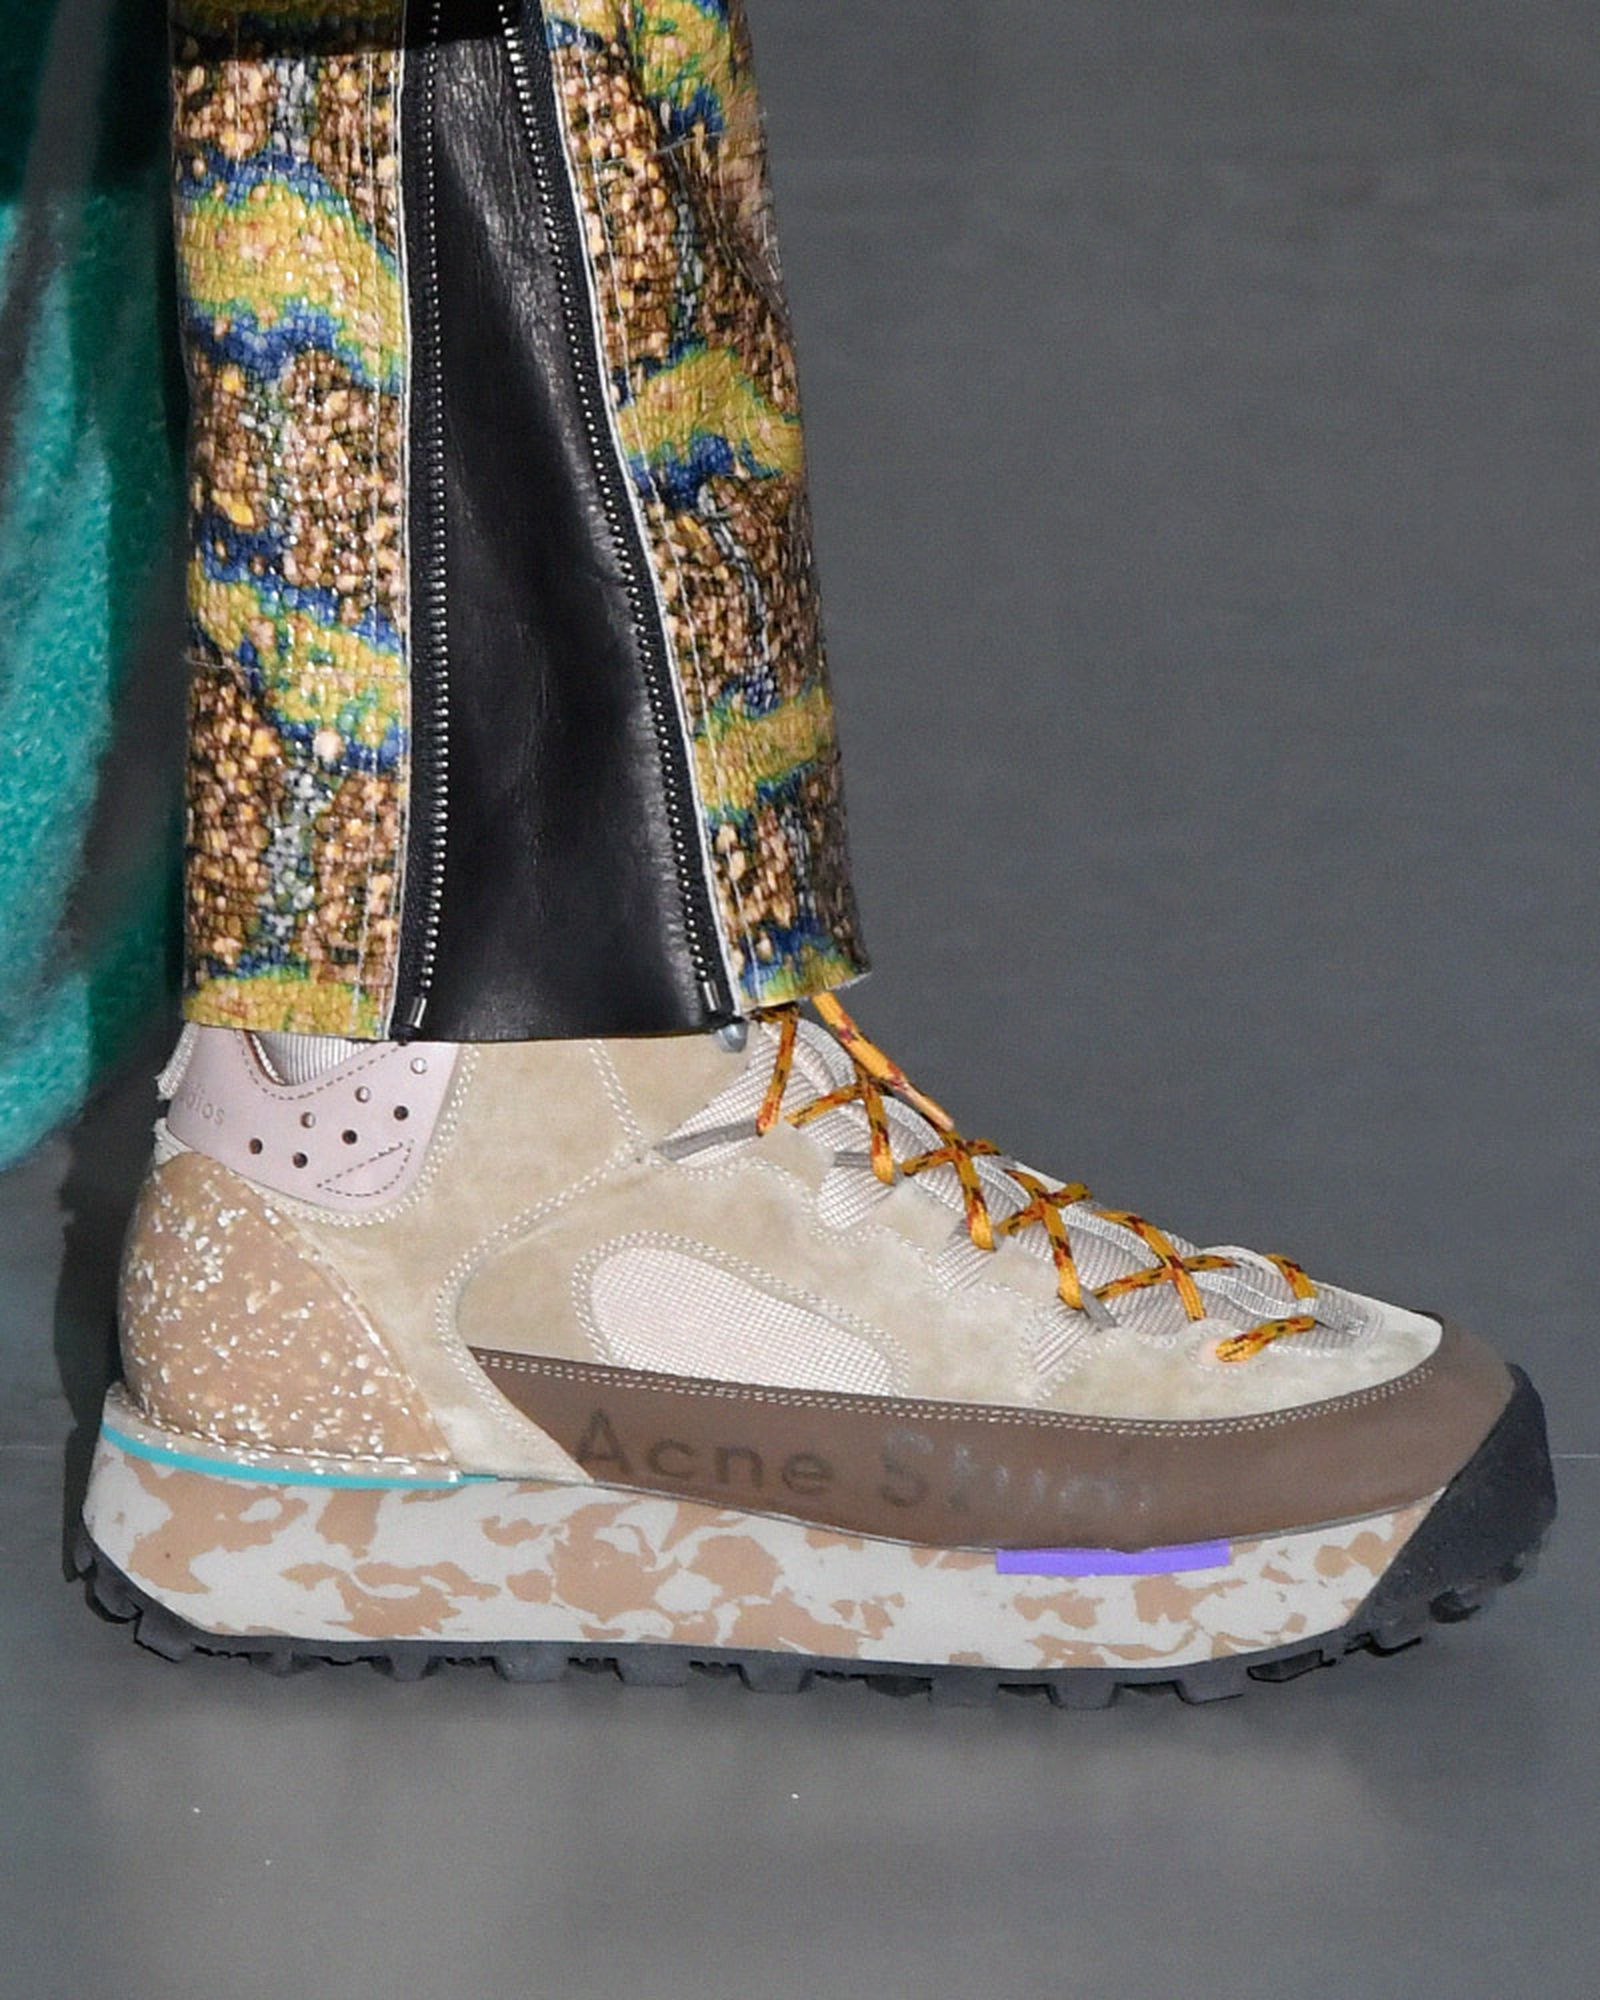 fashion week fw19 sneaker trends roundtable LFW pfw